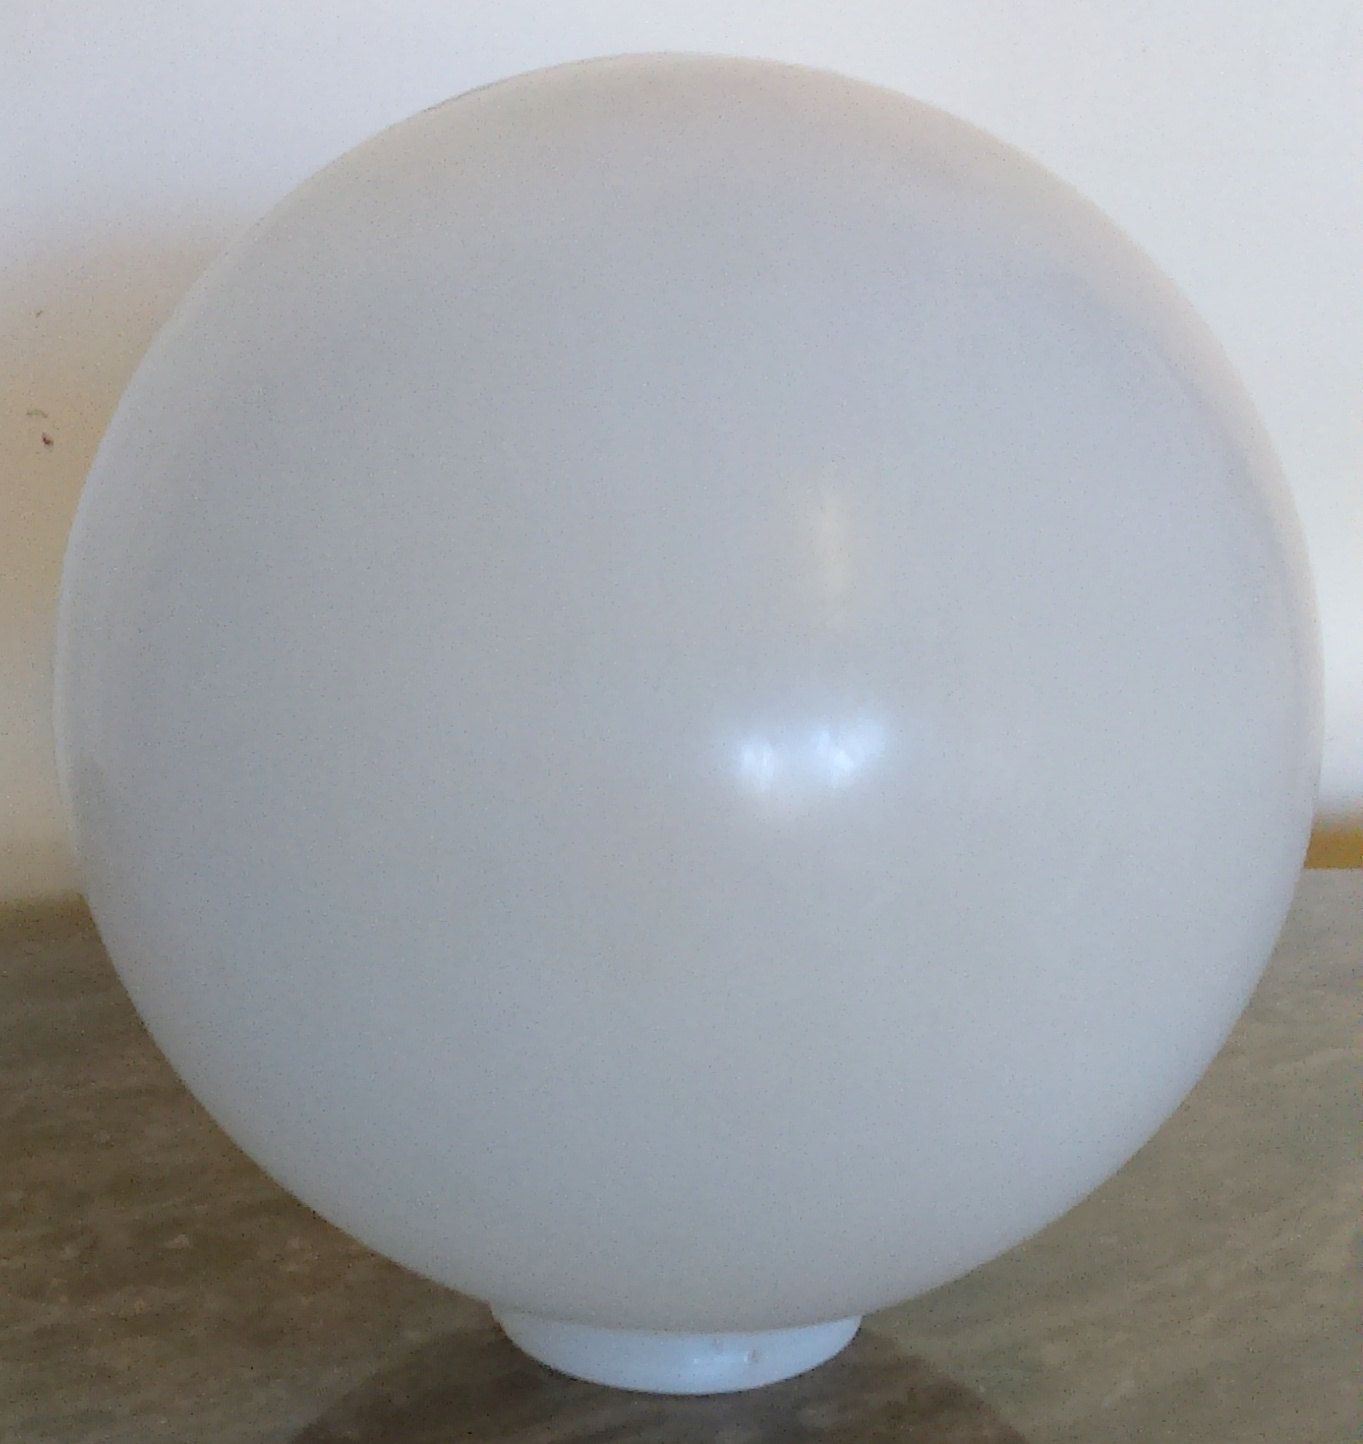 Large Vintage White Plastic Ball Indoor Outdoor Shade Light Fixture Round 12 Quot Diameter 4 Quot Fitter Globe Outdoor Shade Light Shades White Vintage